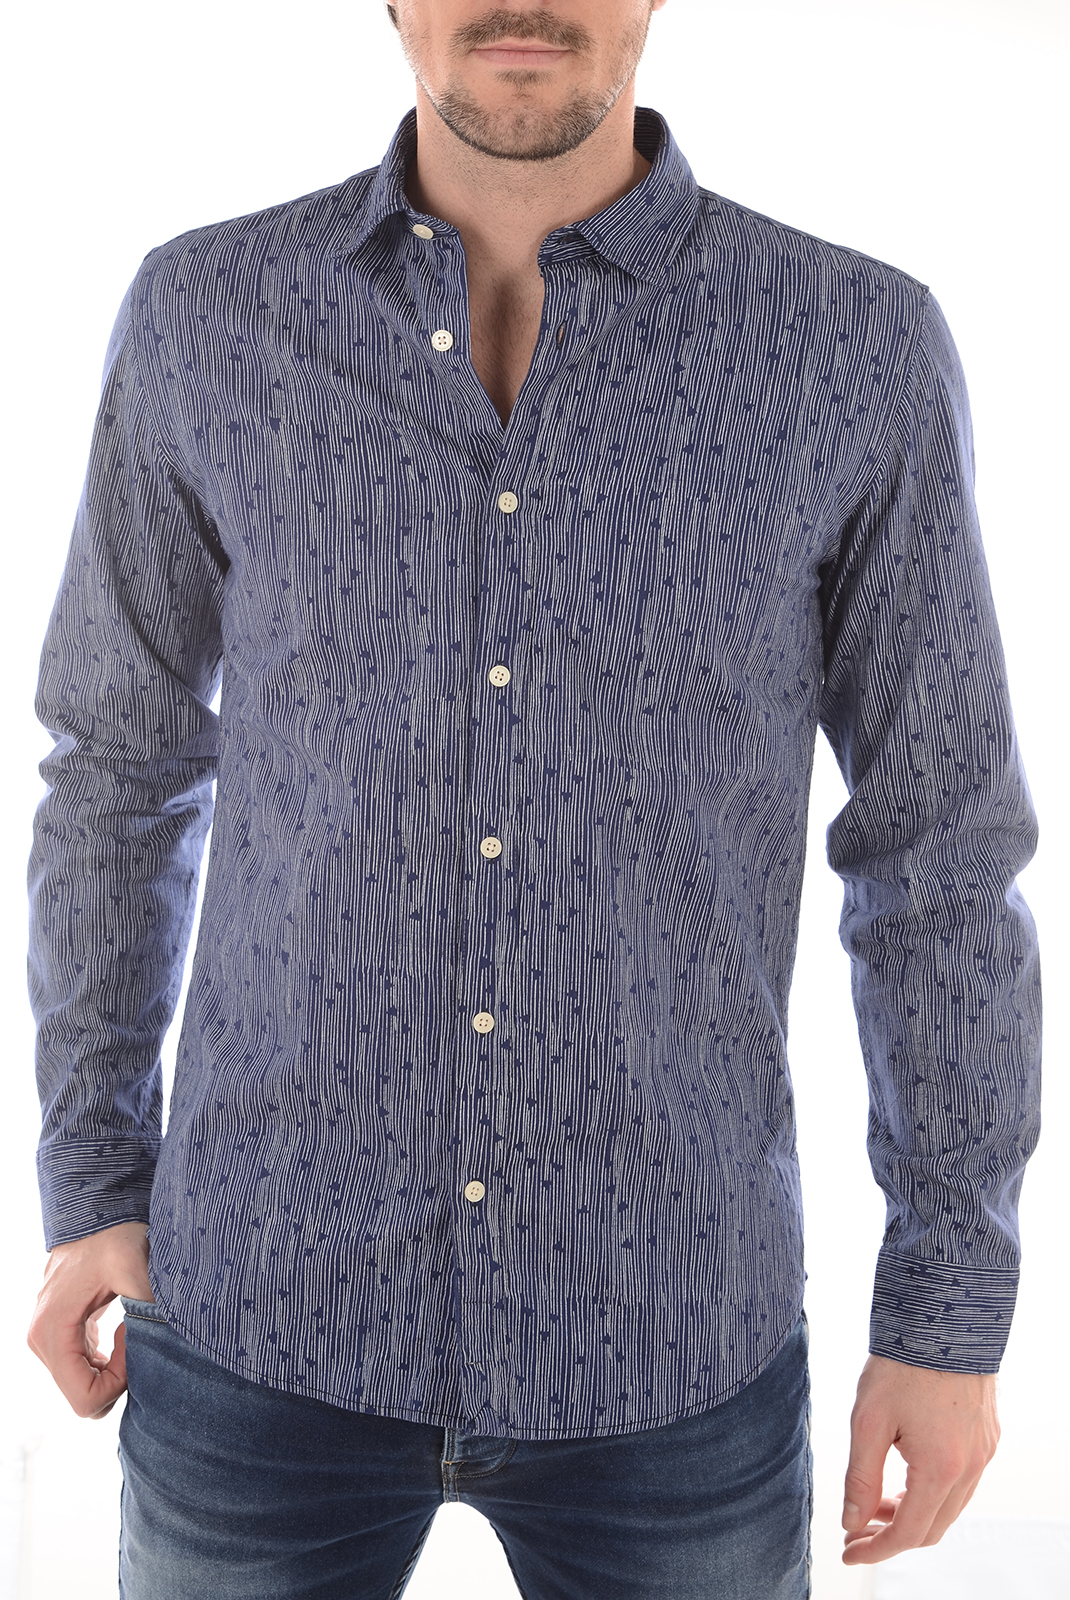 Chemises   Selected ONEVIC SHIRT LS MEDIEVAL BLUE/ WHITE STRI